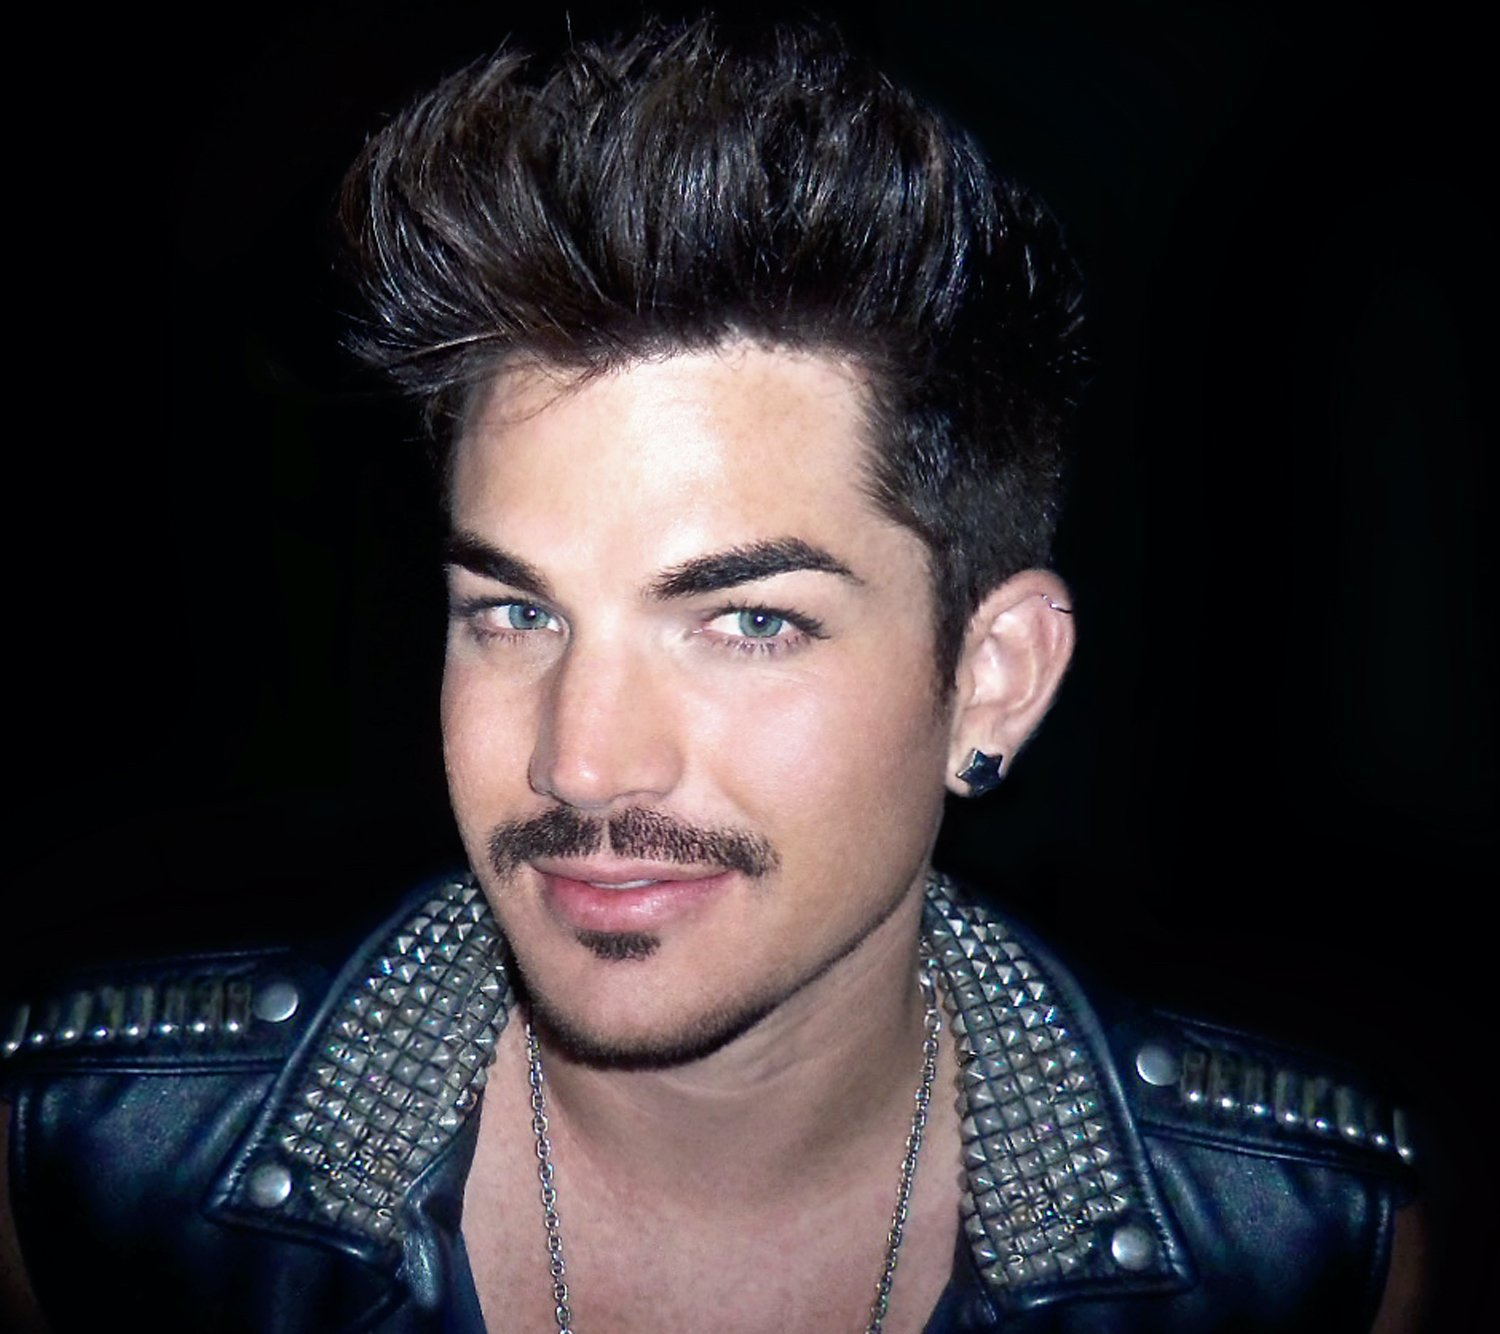 Adam Lambert Pittsburgh Pride Festival 2013 25 Things You Need To Know About Bohemian Rhapsody